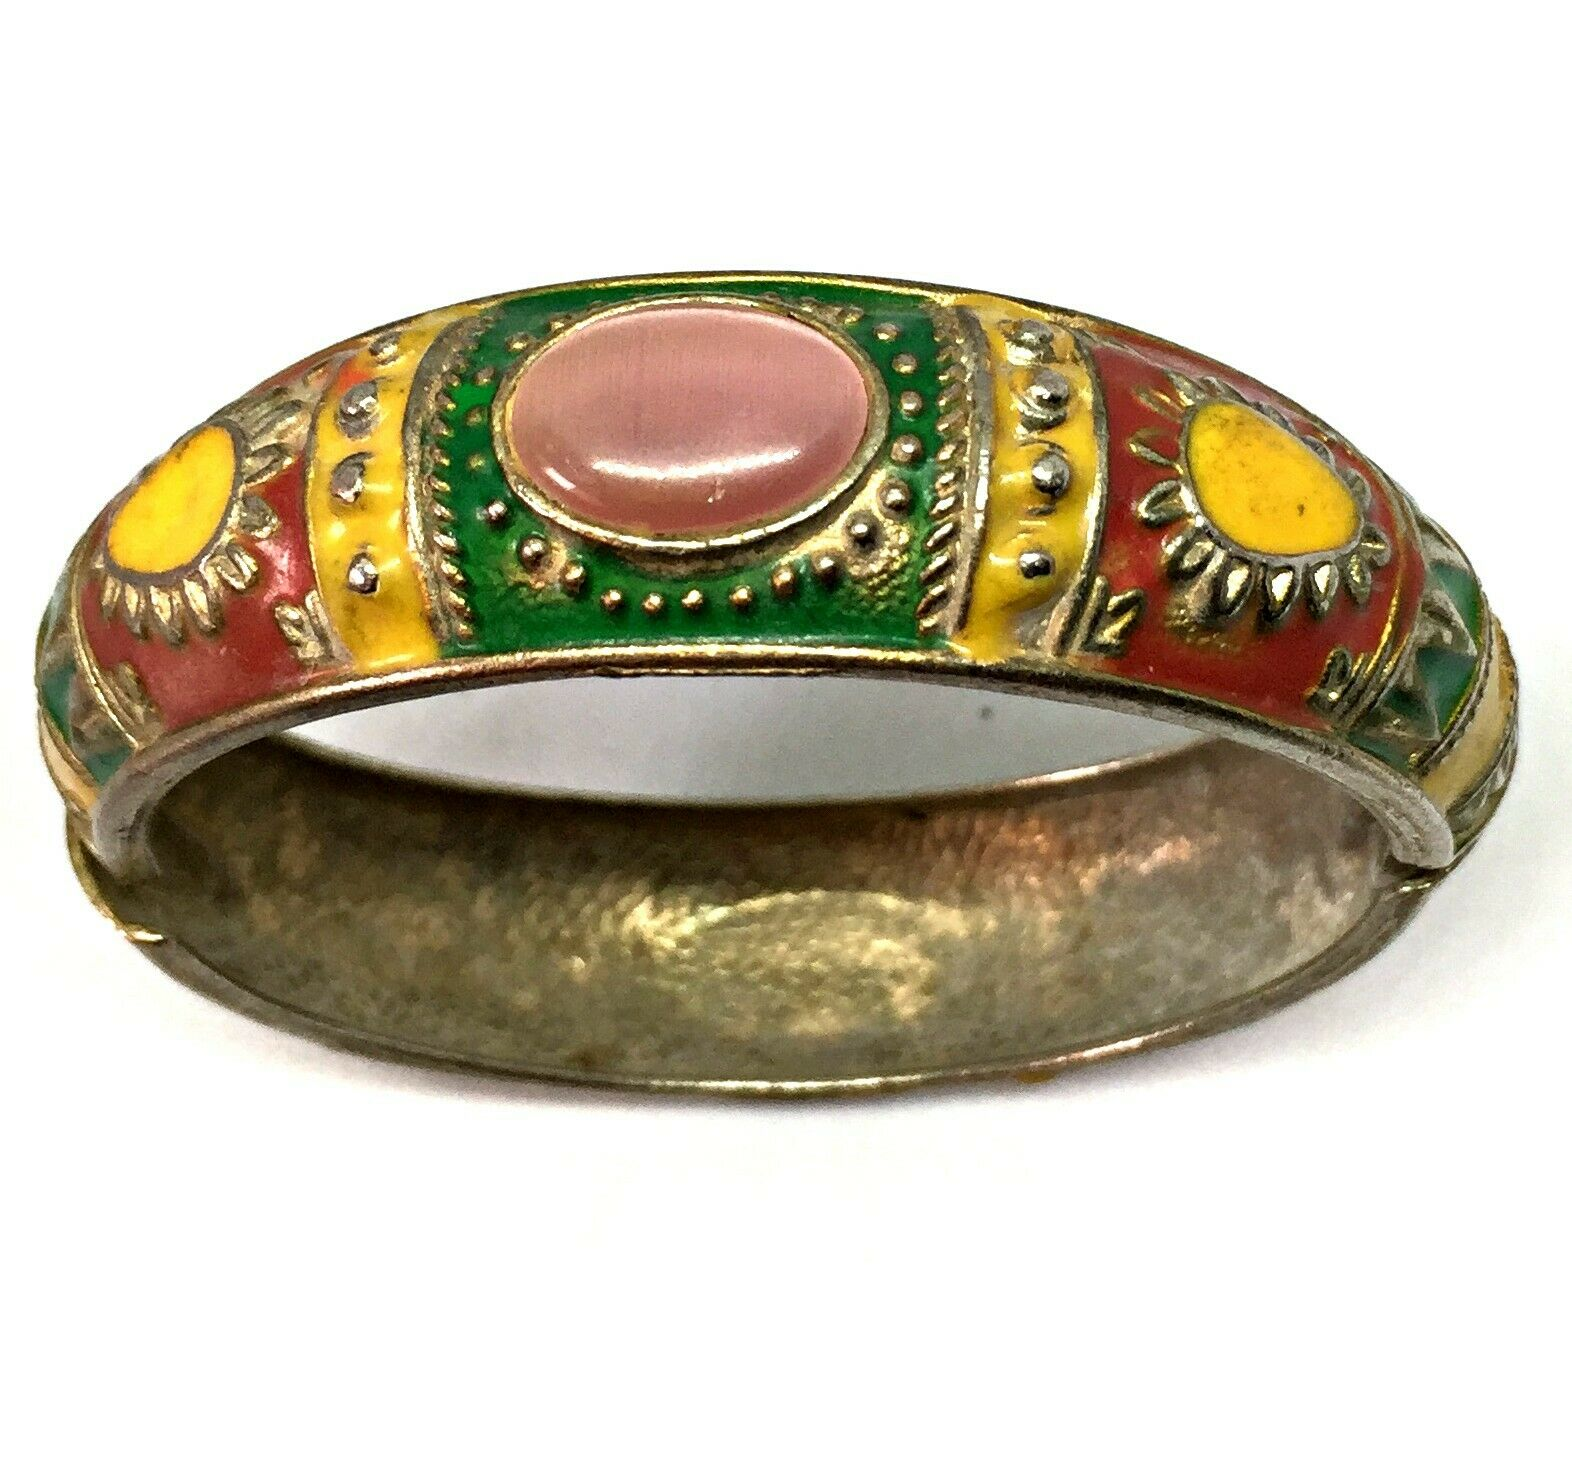 smooth and patina Moroccan Jewelry 2 12 inches diameter, antique primitive Berber Atlas silver dowry bangle